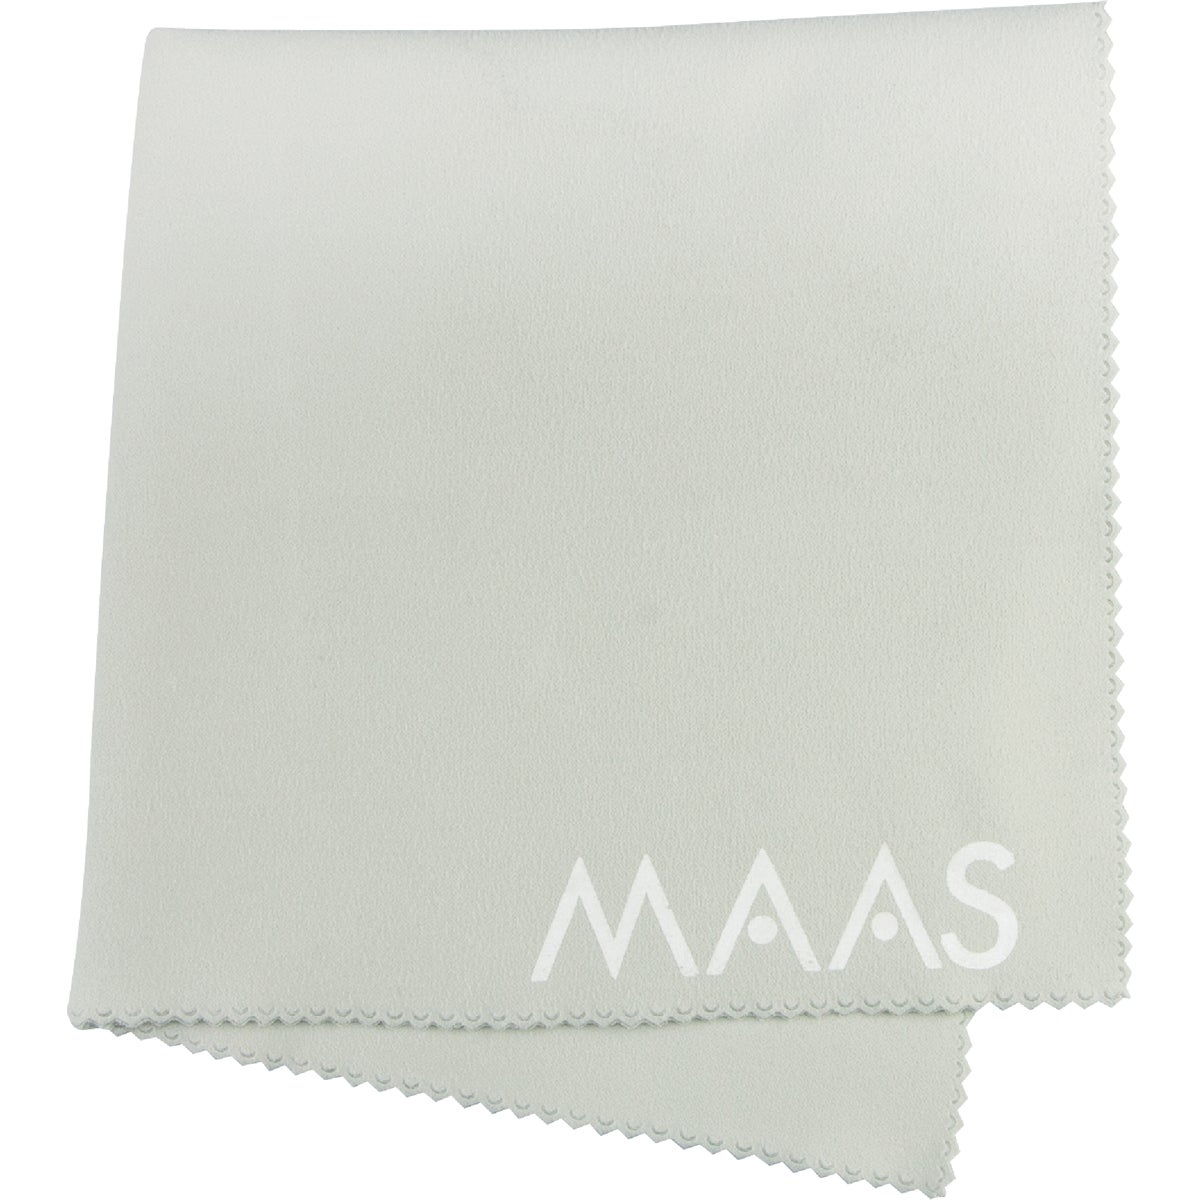 POLISHING CLOTH - 91455 by Maas